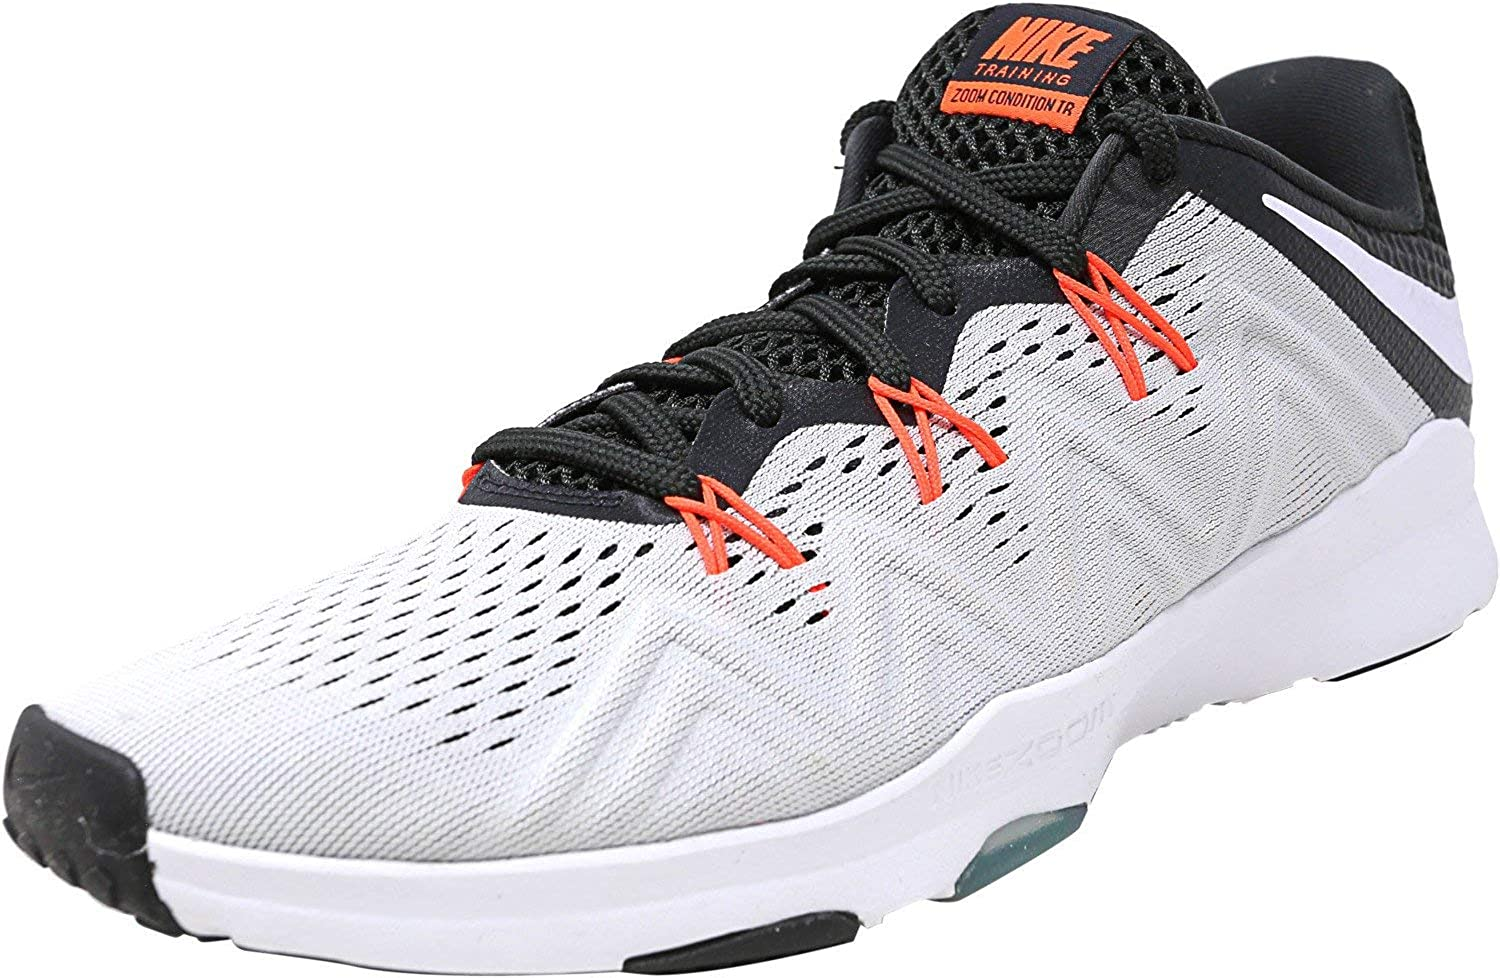 Nike Women's Zoom Condition Tr Ankle-High Fabric Training shoes